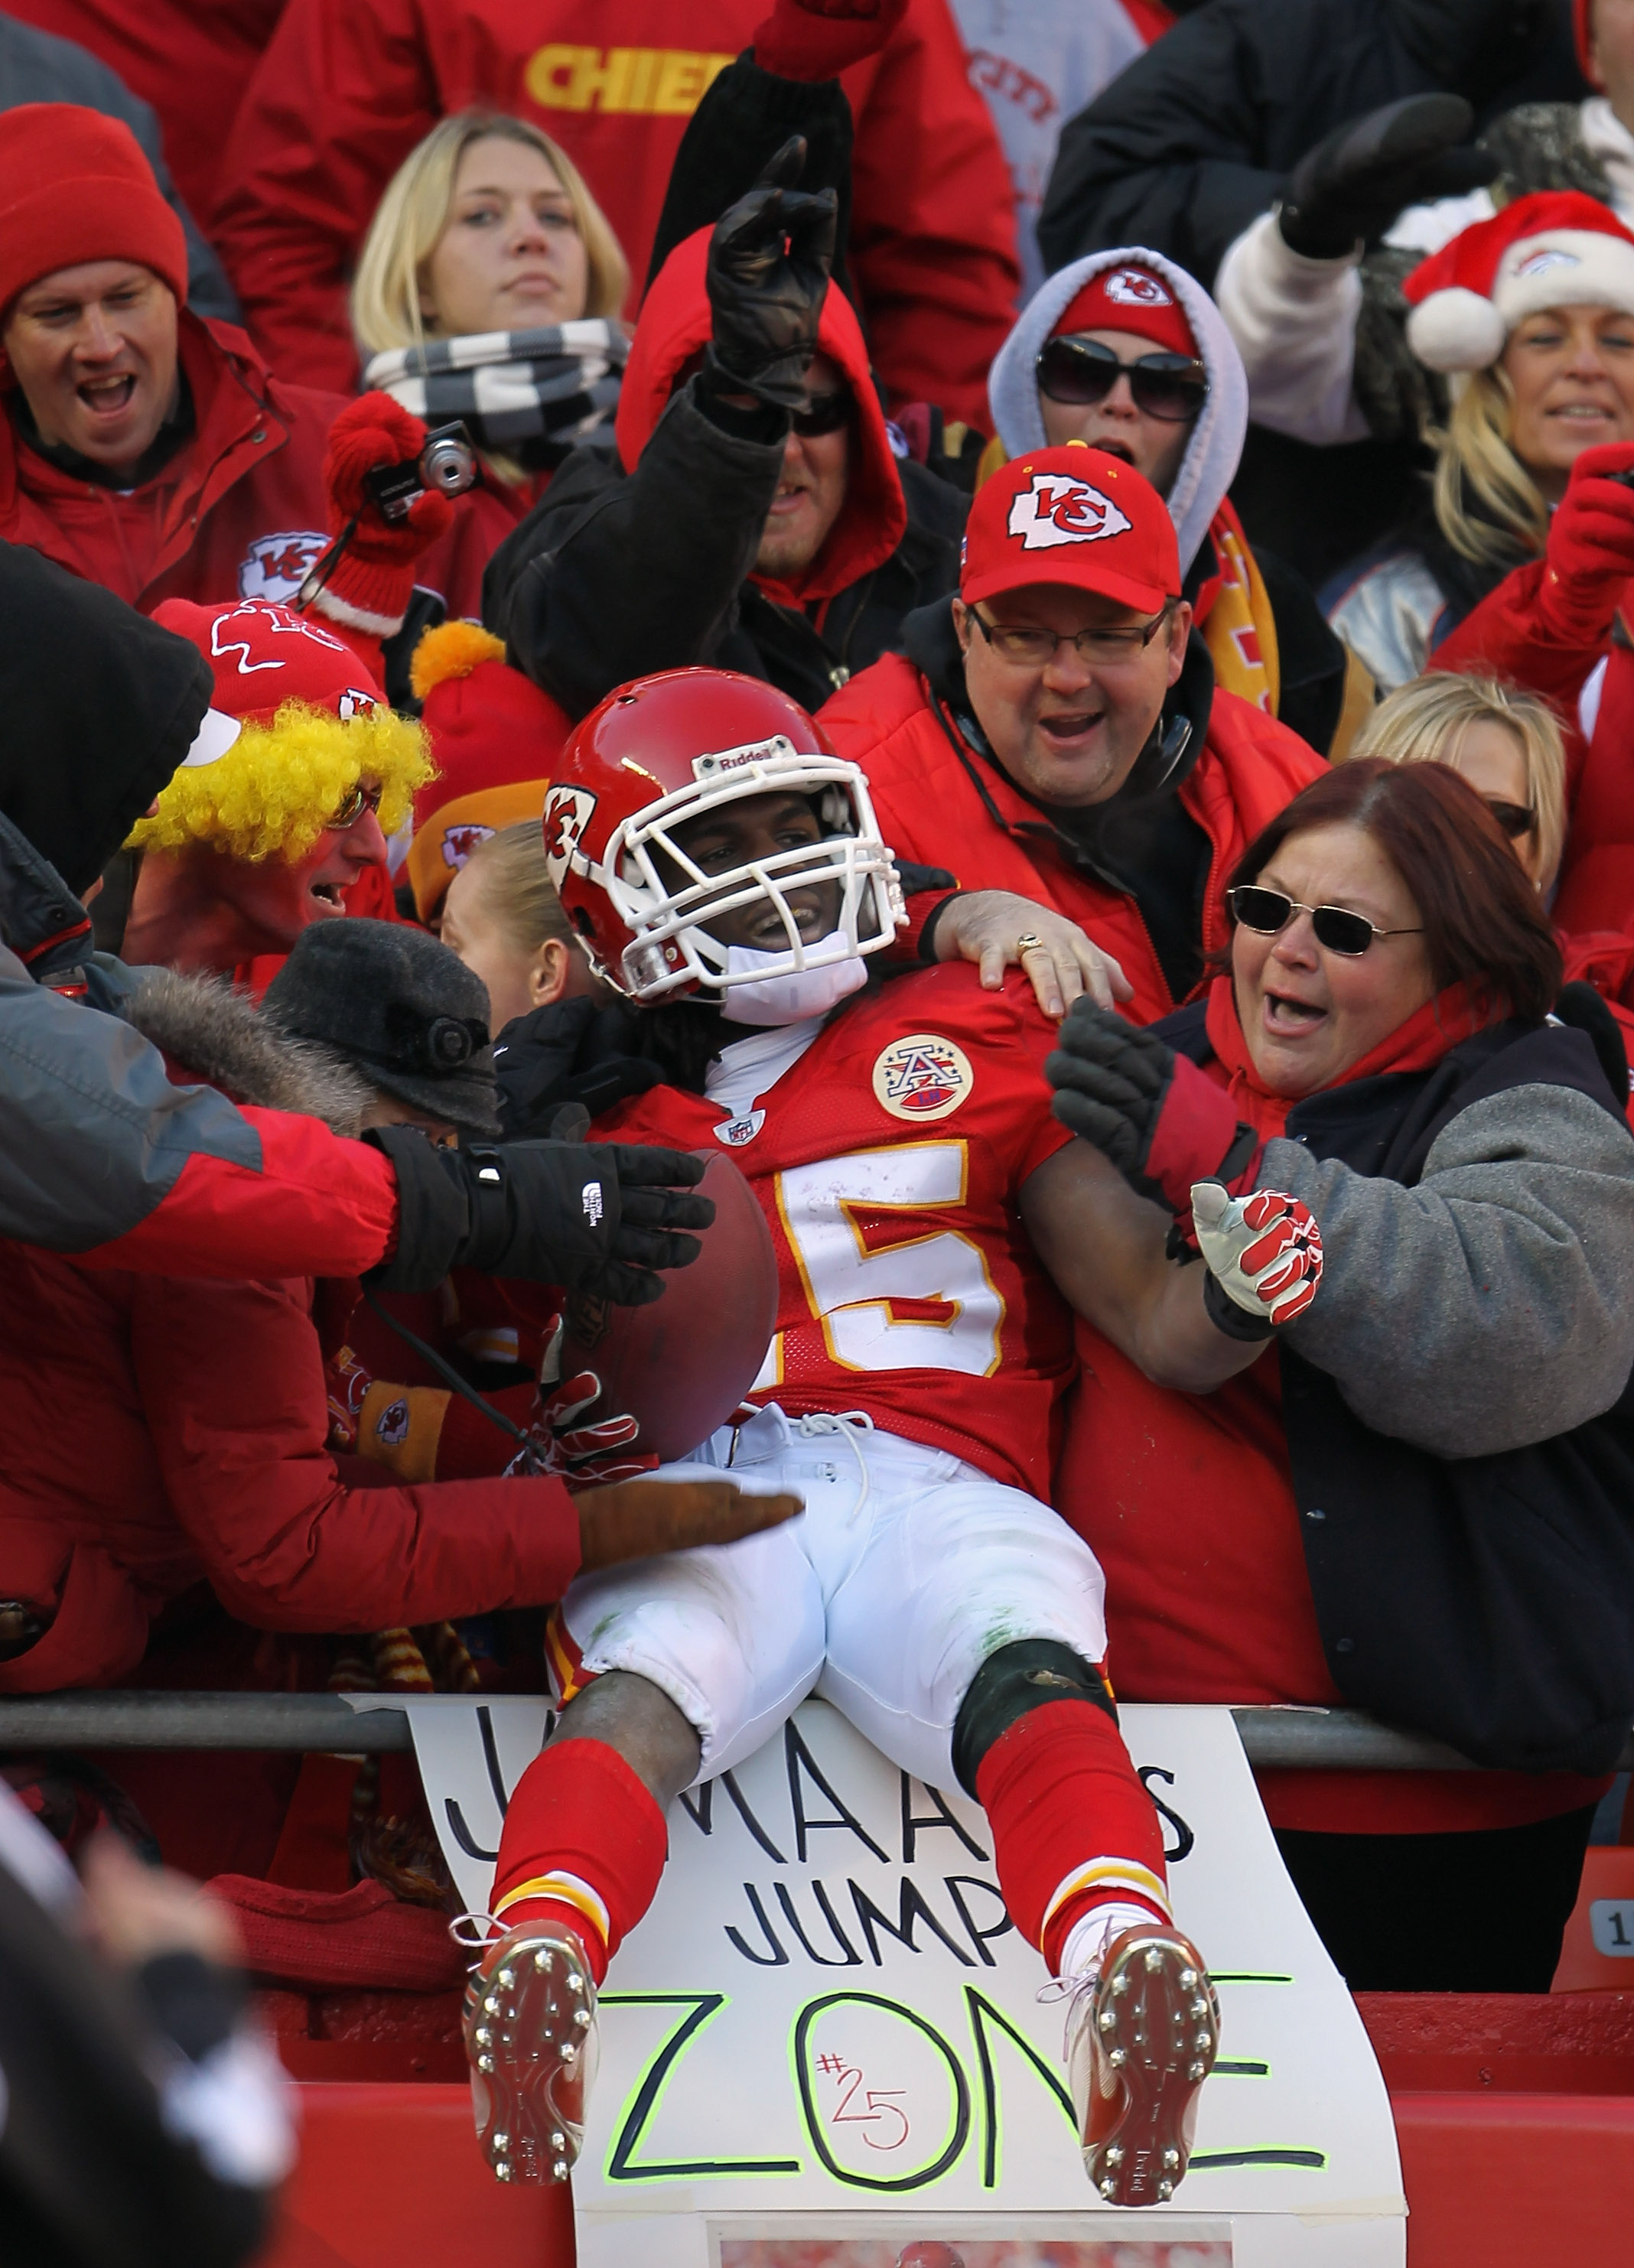 KANSAS CITY, MO - DECEMBER 05:  Jamaal Charles #25 of the Kansas City Chiefs celebrates by jumping into the crowd after scoring a touchdown that was eventually called back during the game against the Denver Broncos on December 5, 2010 at Arrowhead Stadium